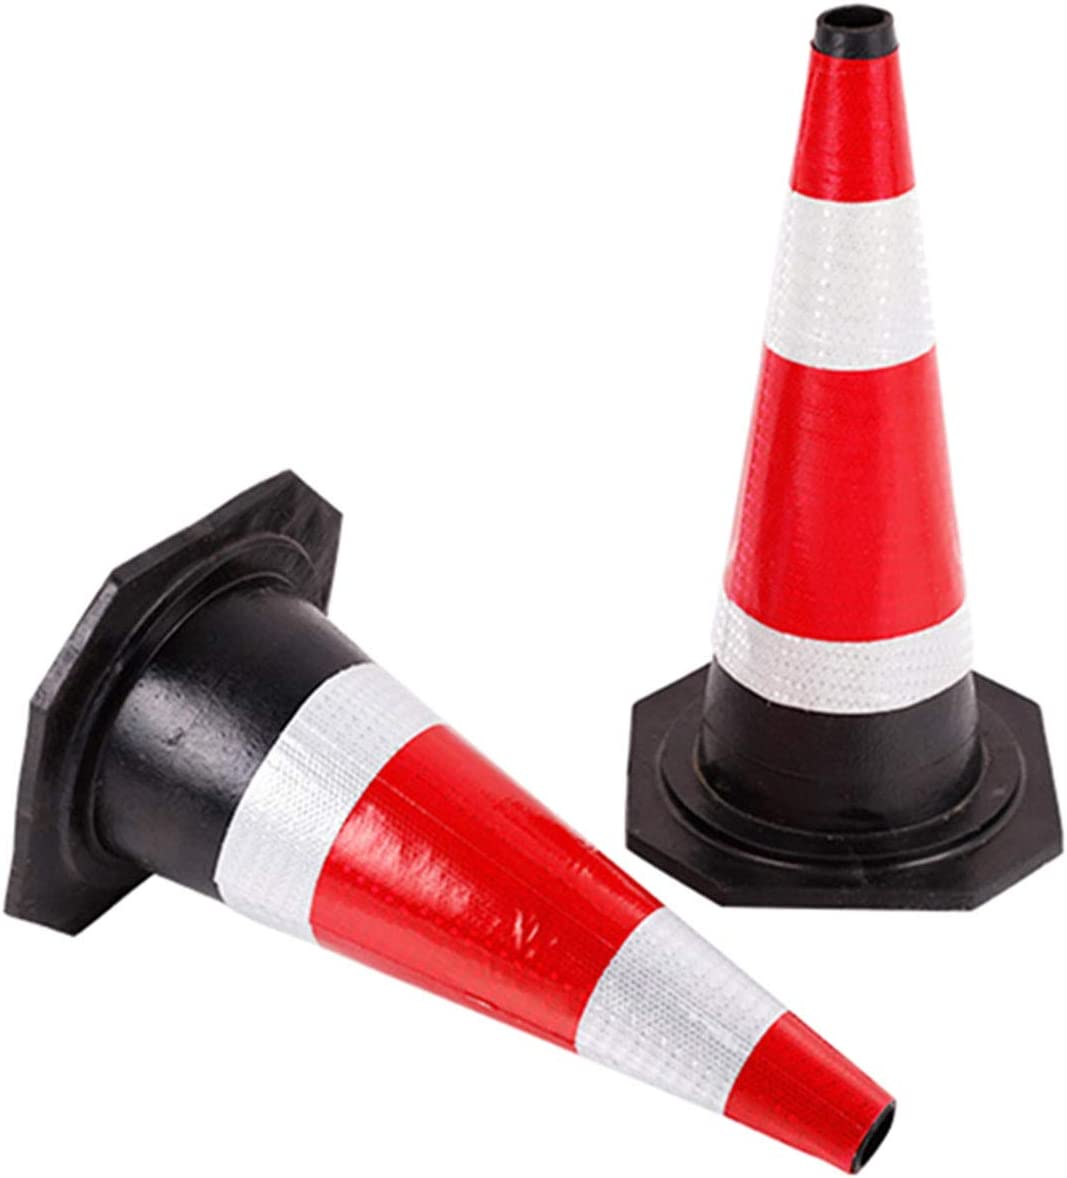 AllRight 12 x Safety cones 480mm 18 Self weighted Road Traffic Cones